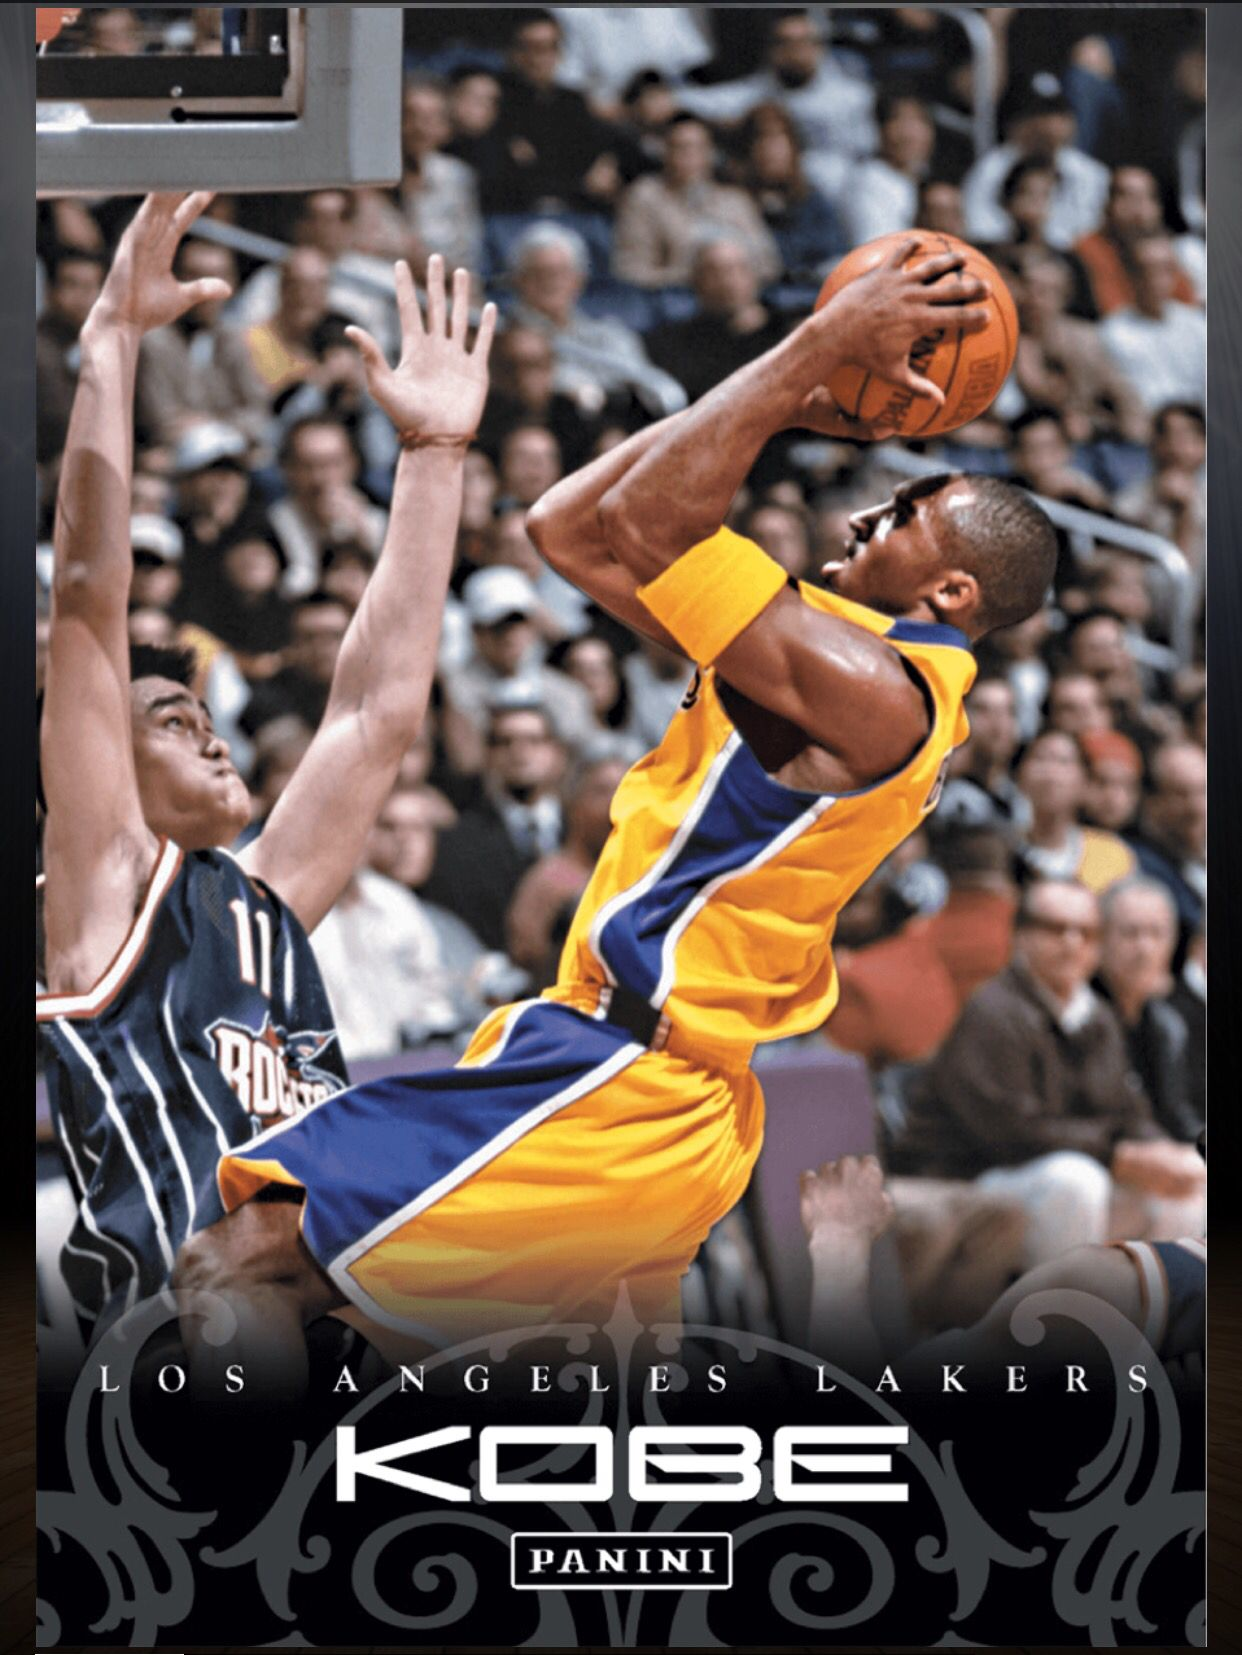 kobe bryant los angeles lakers yao ming kobe anthology card kobe bryant los angeles lakers yao ming kobe anthology card panini dunk